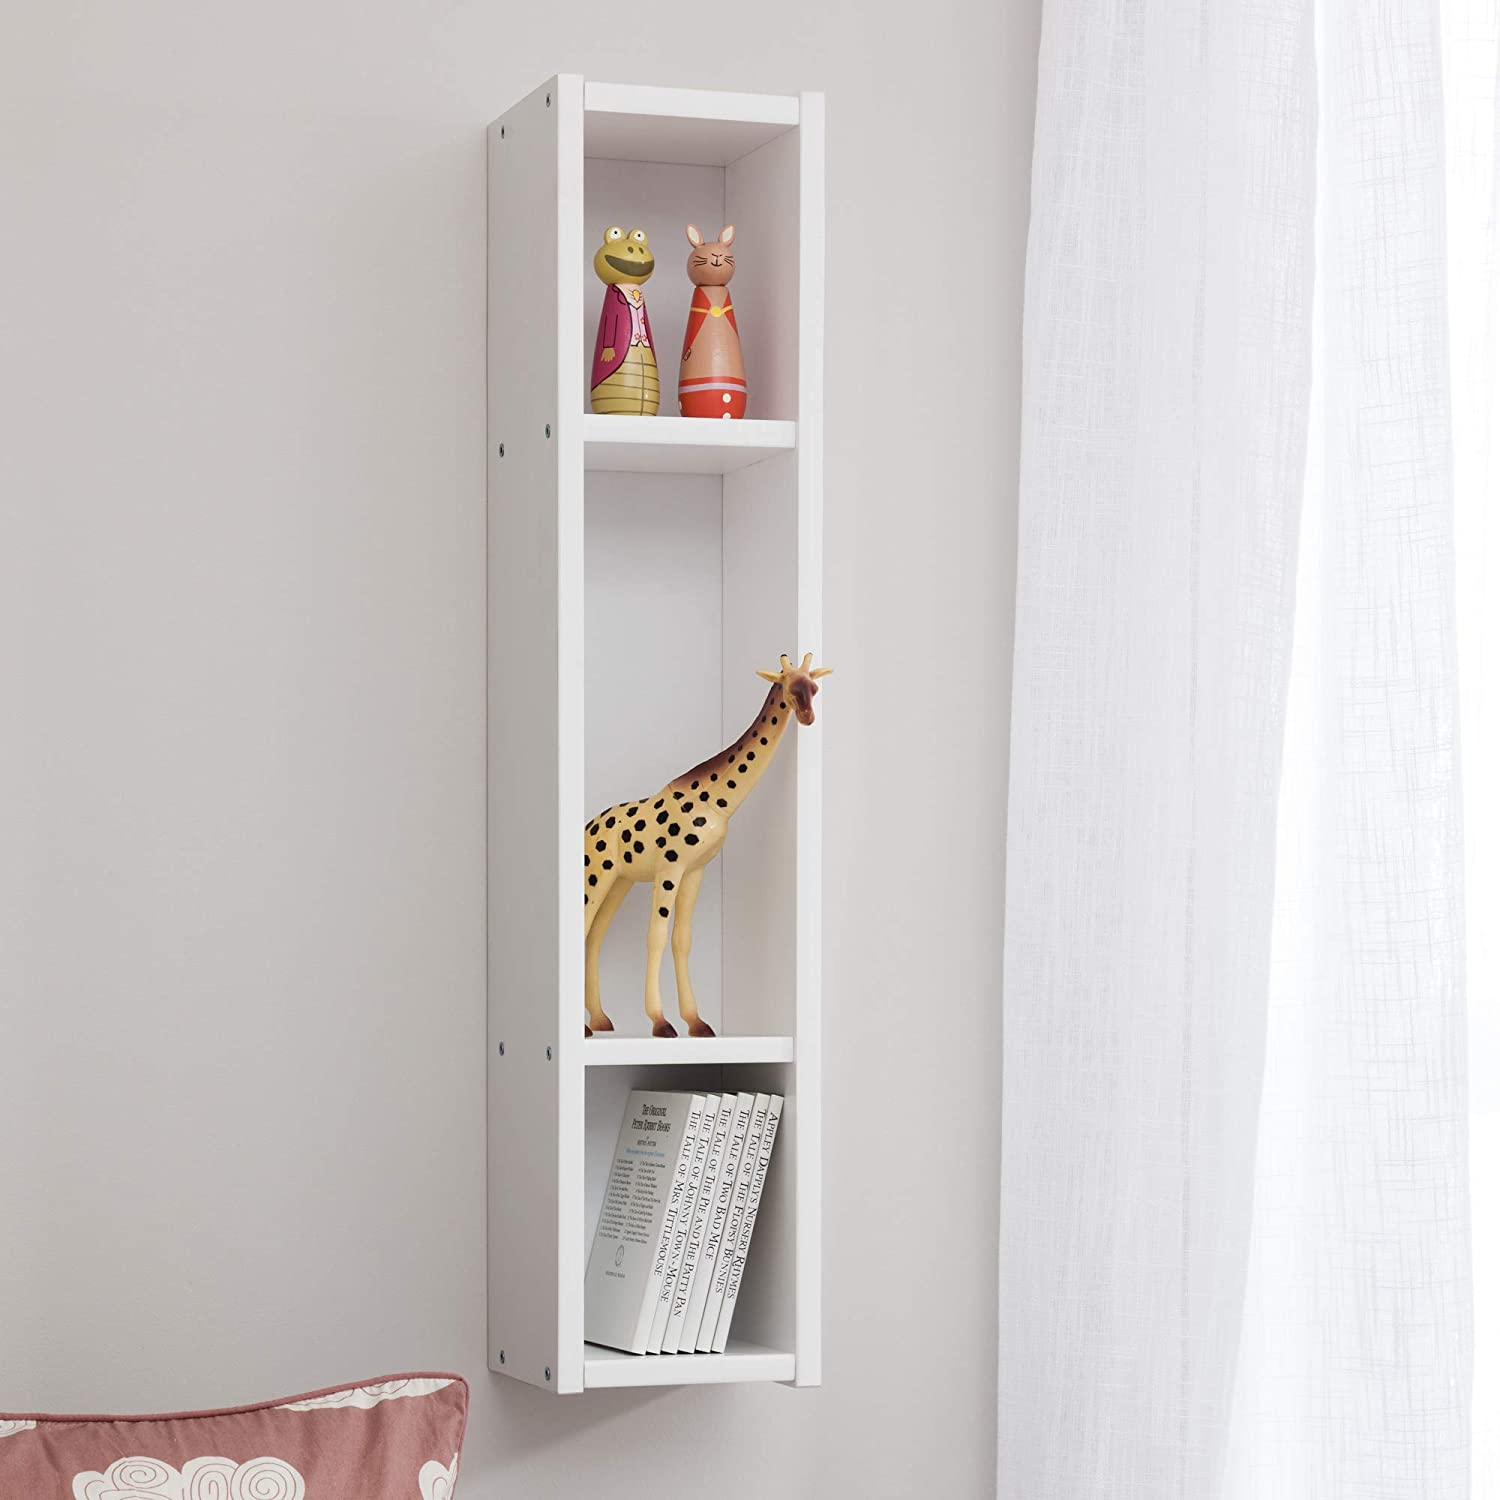 Childrens High Quality Bedroom Furniture for Baby Toddler Junior Wall Mounted Shelf for Books and Accessories Kids Wooden Modern White Wall Shelve by Leomark